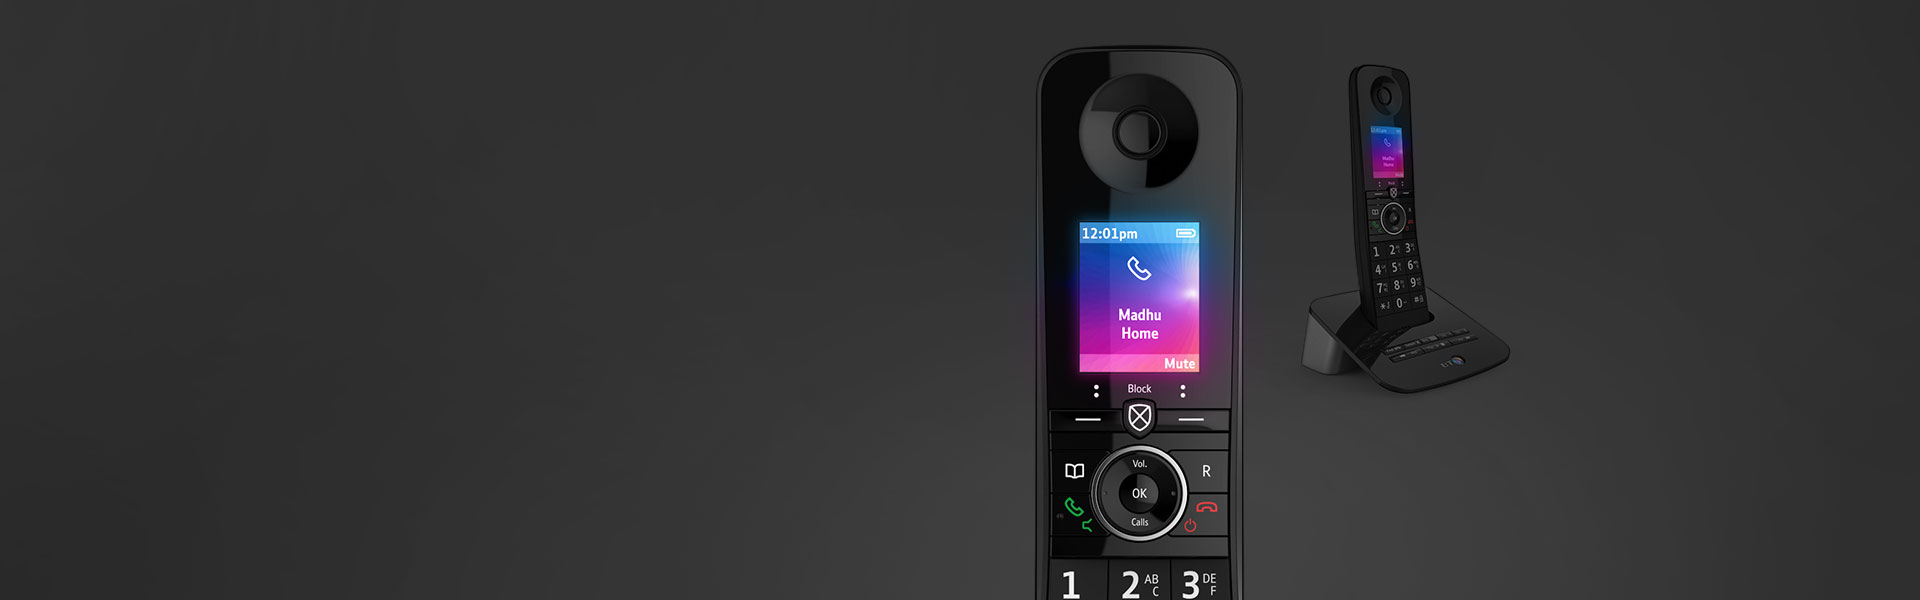 BT Home phone deals, call blocking feature